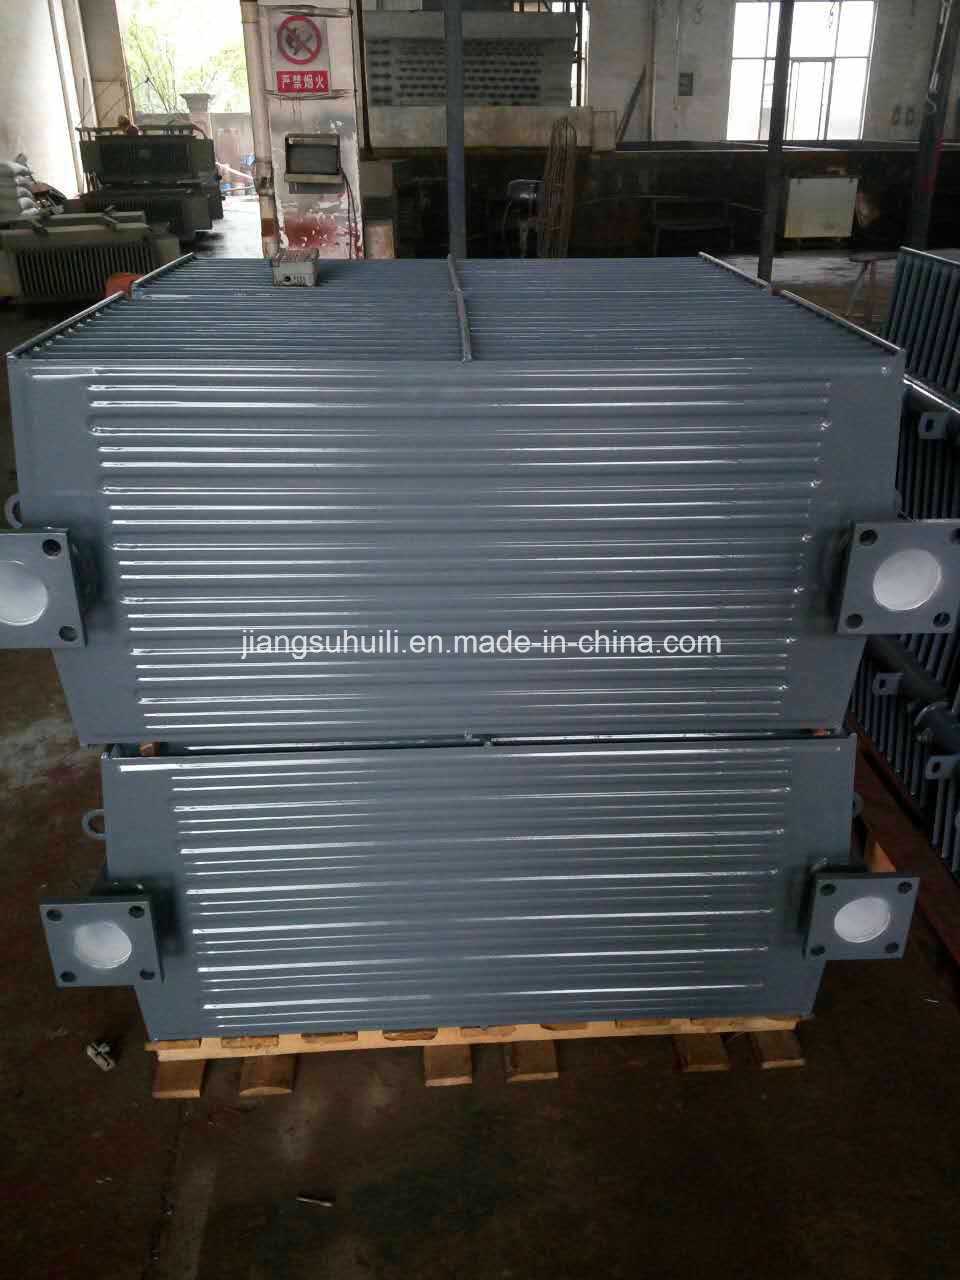 1500kVA Oil-Immersed Transformer Radiator pictures & photos